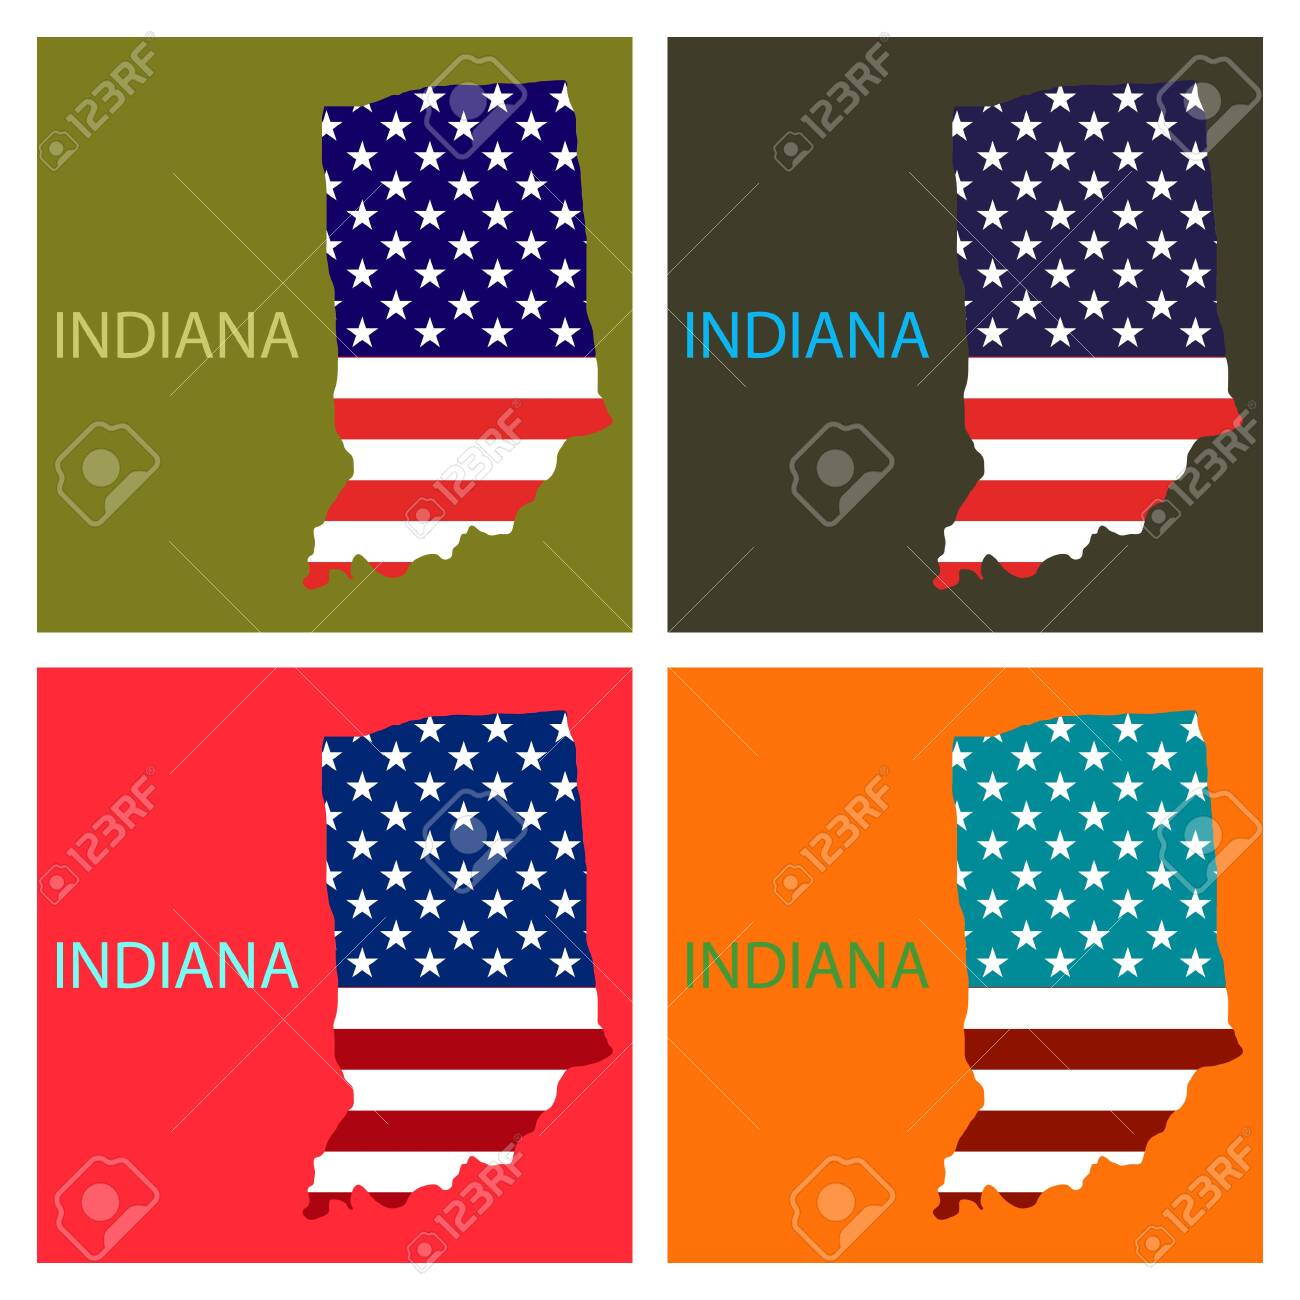 Indiana state of America with map. Flag print on map of USA for.. on mississippi map usa, oregon map usa, yale map usa, united states political map usa, montana map usa, show map of indiana usa, evansville map usa, indiana city usa, minnesota map usa, new mexico map usa, kentucky map usa, indiana on map, tulsa map usa, akron map usa, virginia map usa, oklahoma map usa, iowa map usa, columbia map usa, indiana road map of usa, michigan map usa,